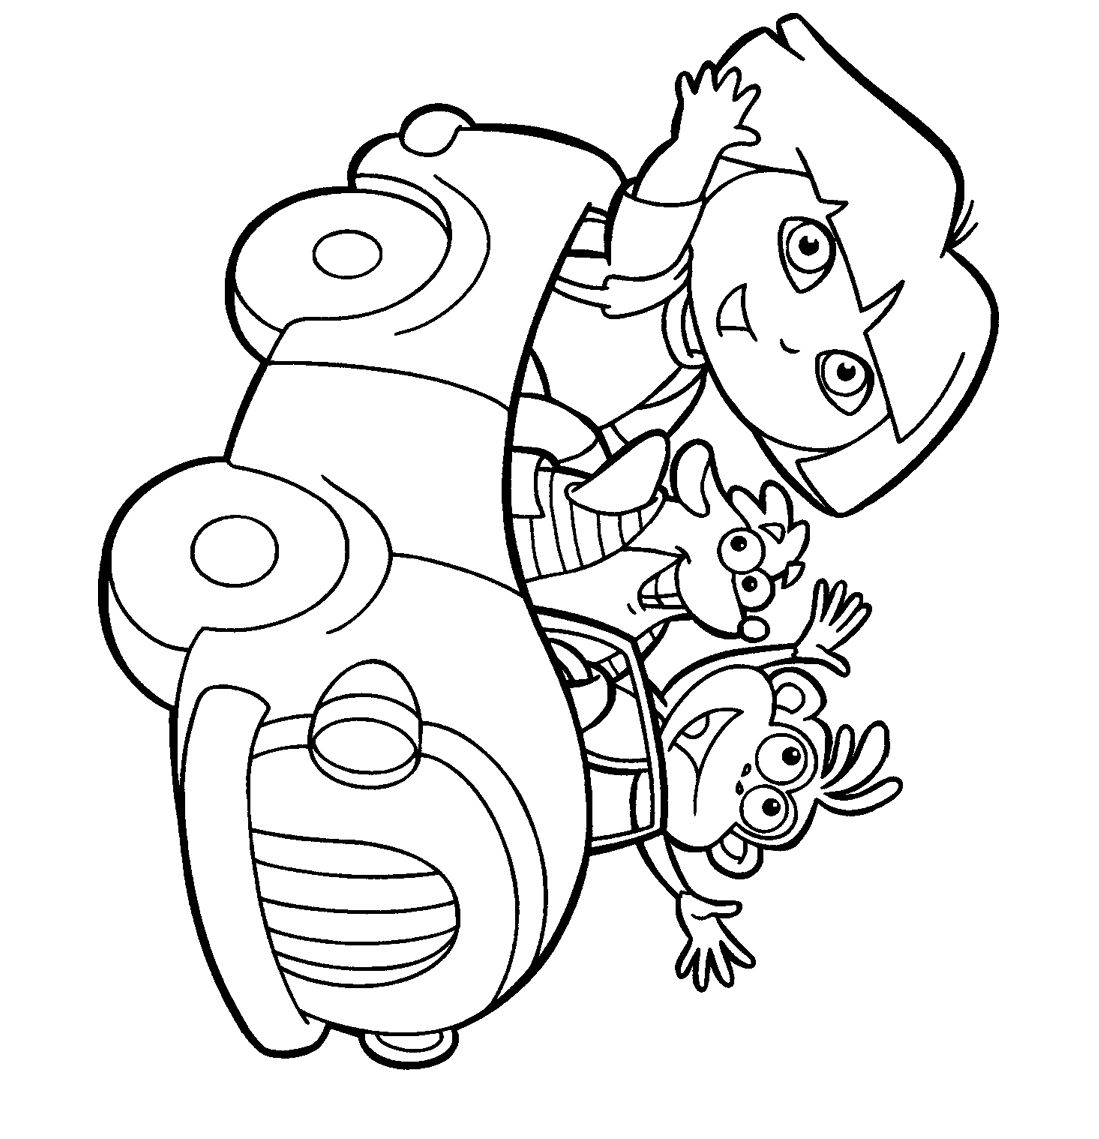 Coloring pages for kids to have fun | Colorings | Pinterest